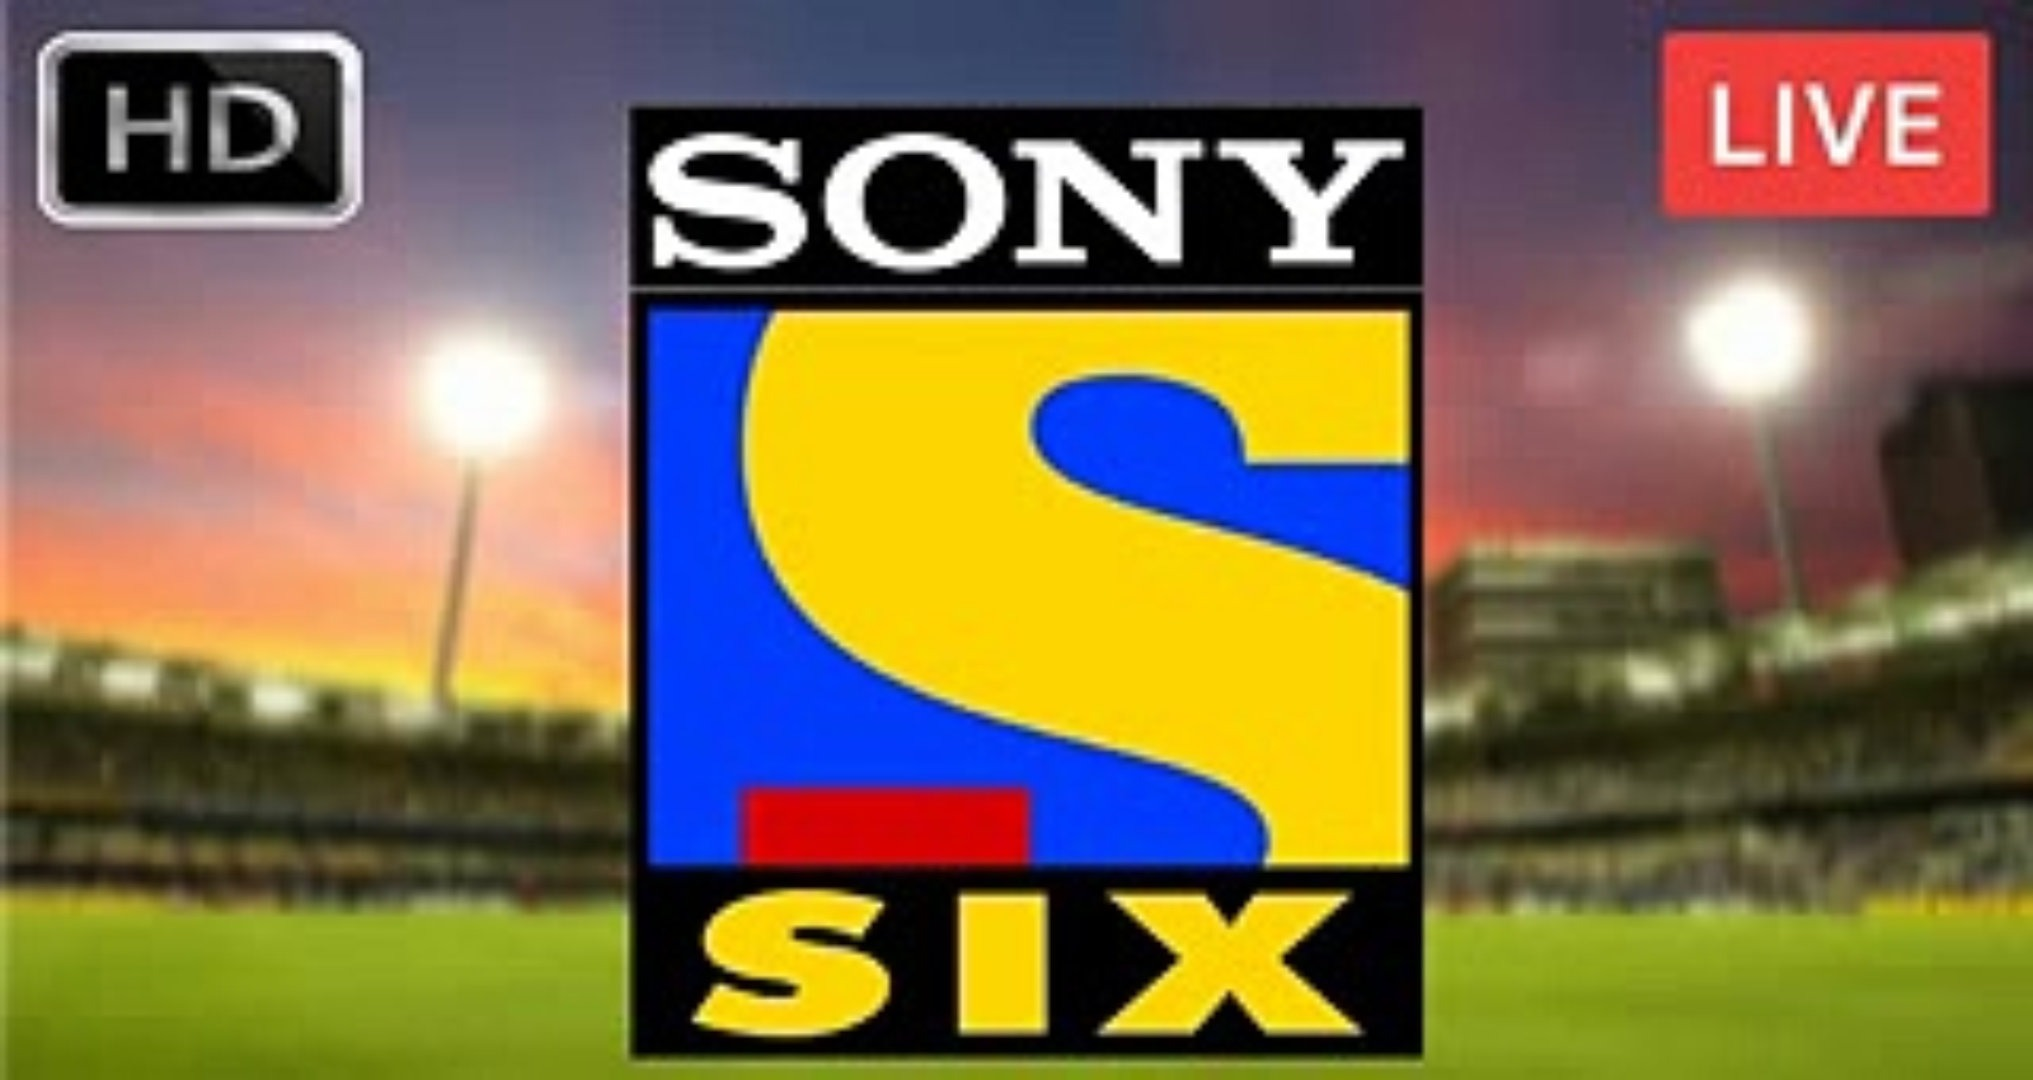 India vs England 2nd Test: Sony Six, Sony Ten 3, Sky Sports live streaming info